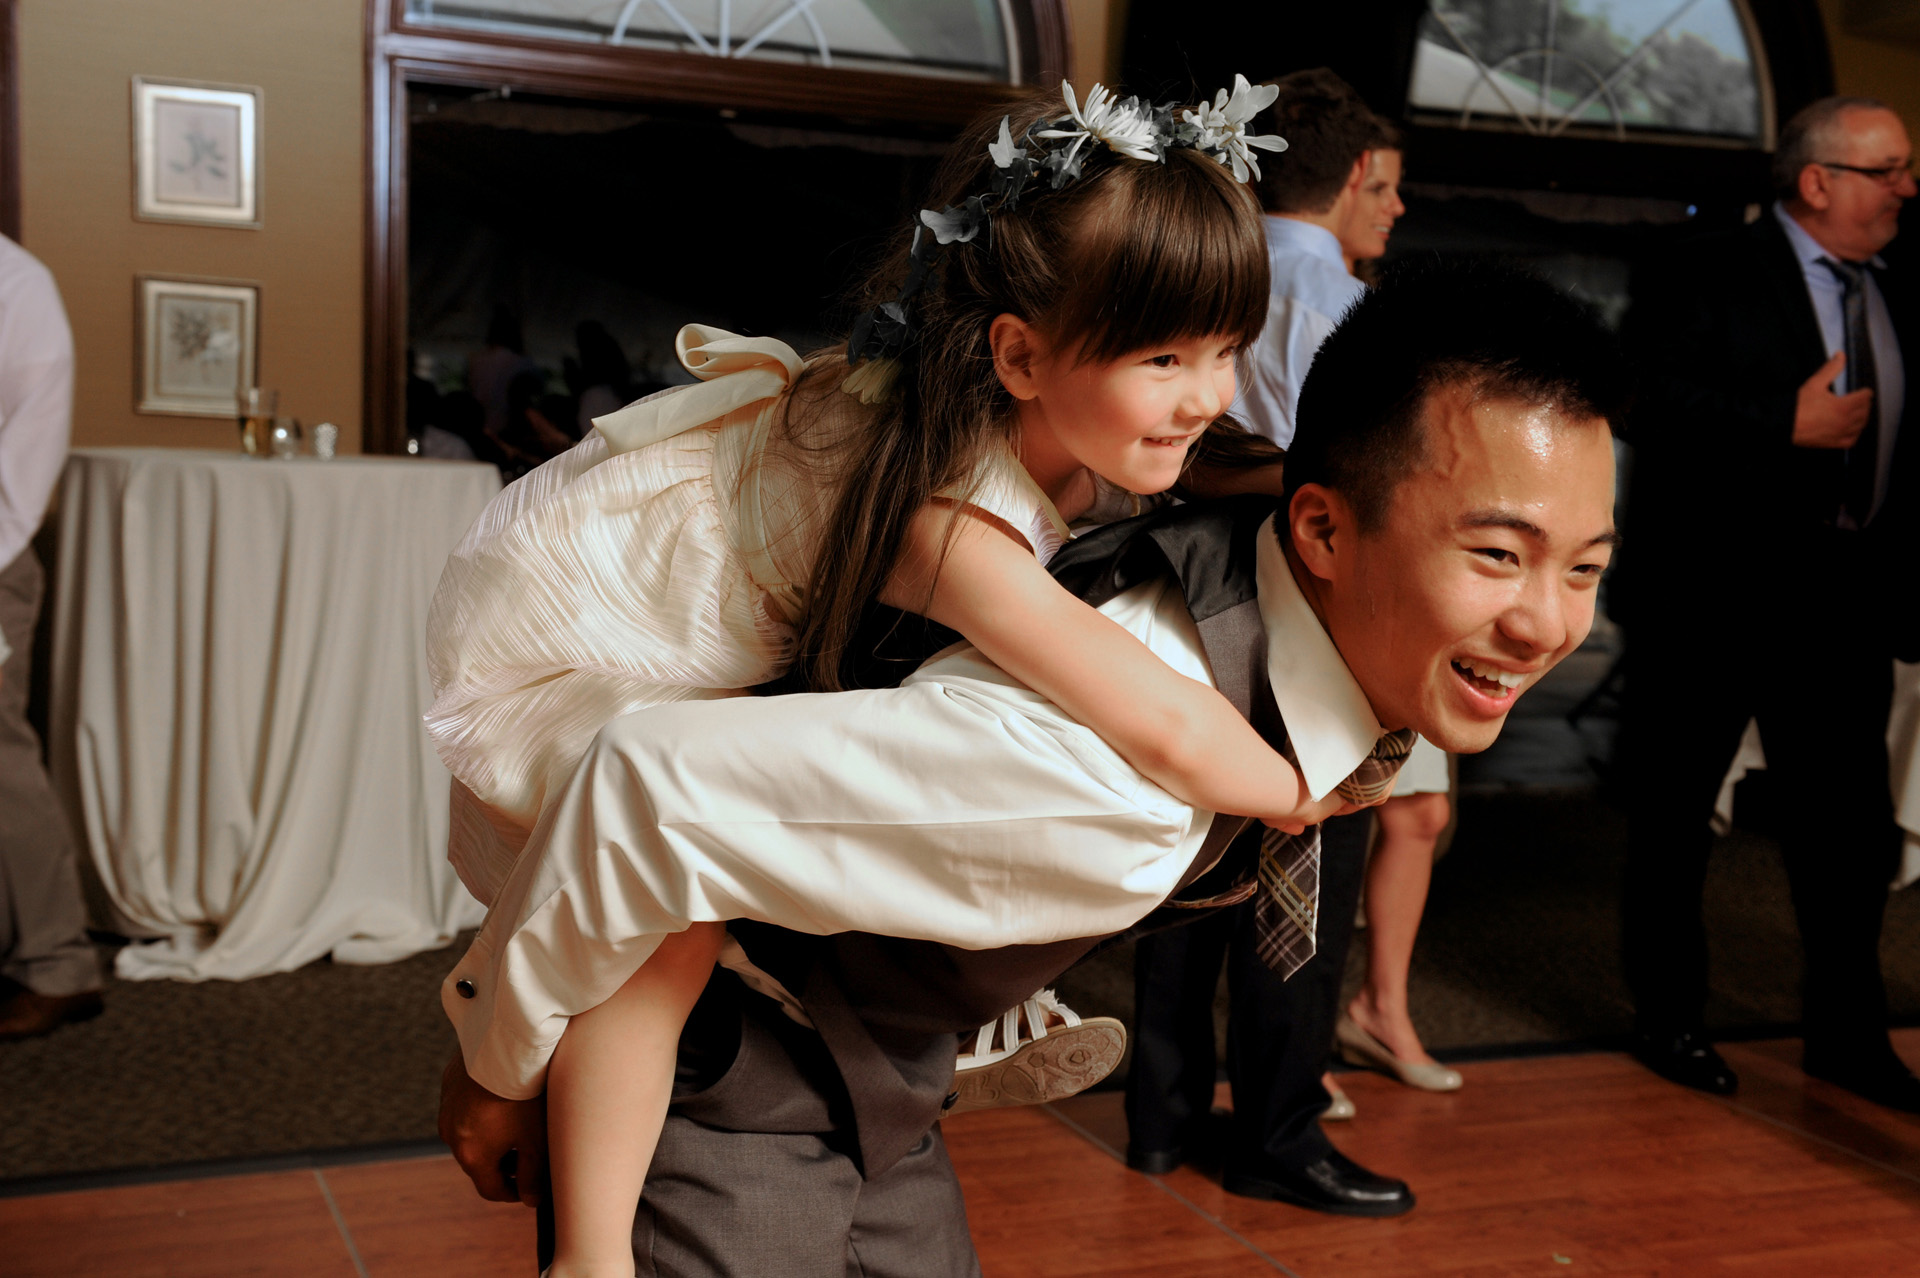 Pine Trace Golf Club wedding photographer's photo of a groomsman giving the flower girl a piggy back ride during the cocktail hour at the Pine Trace Golf Club wedding in Troy and Rochester, Michigan.